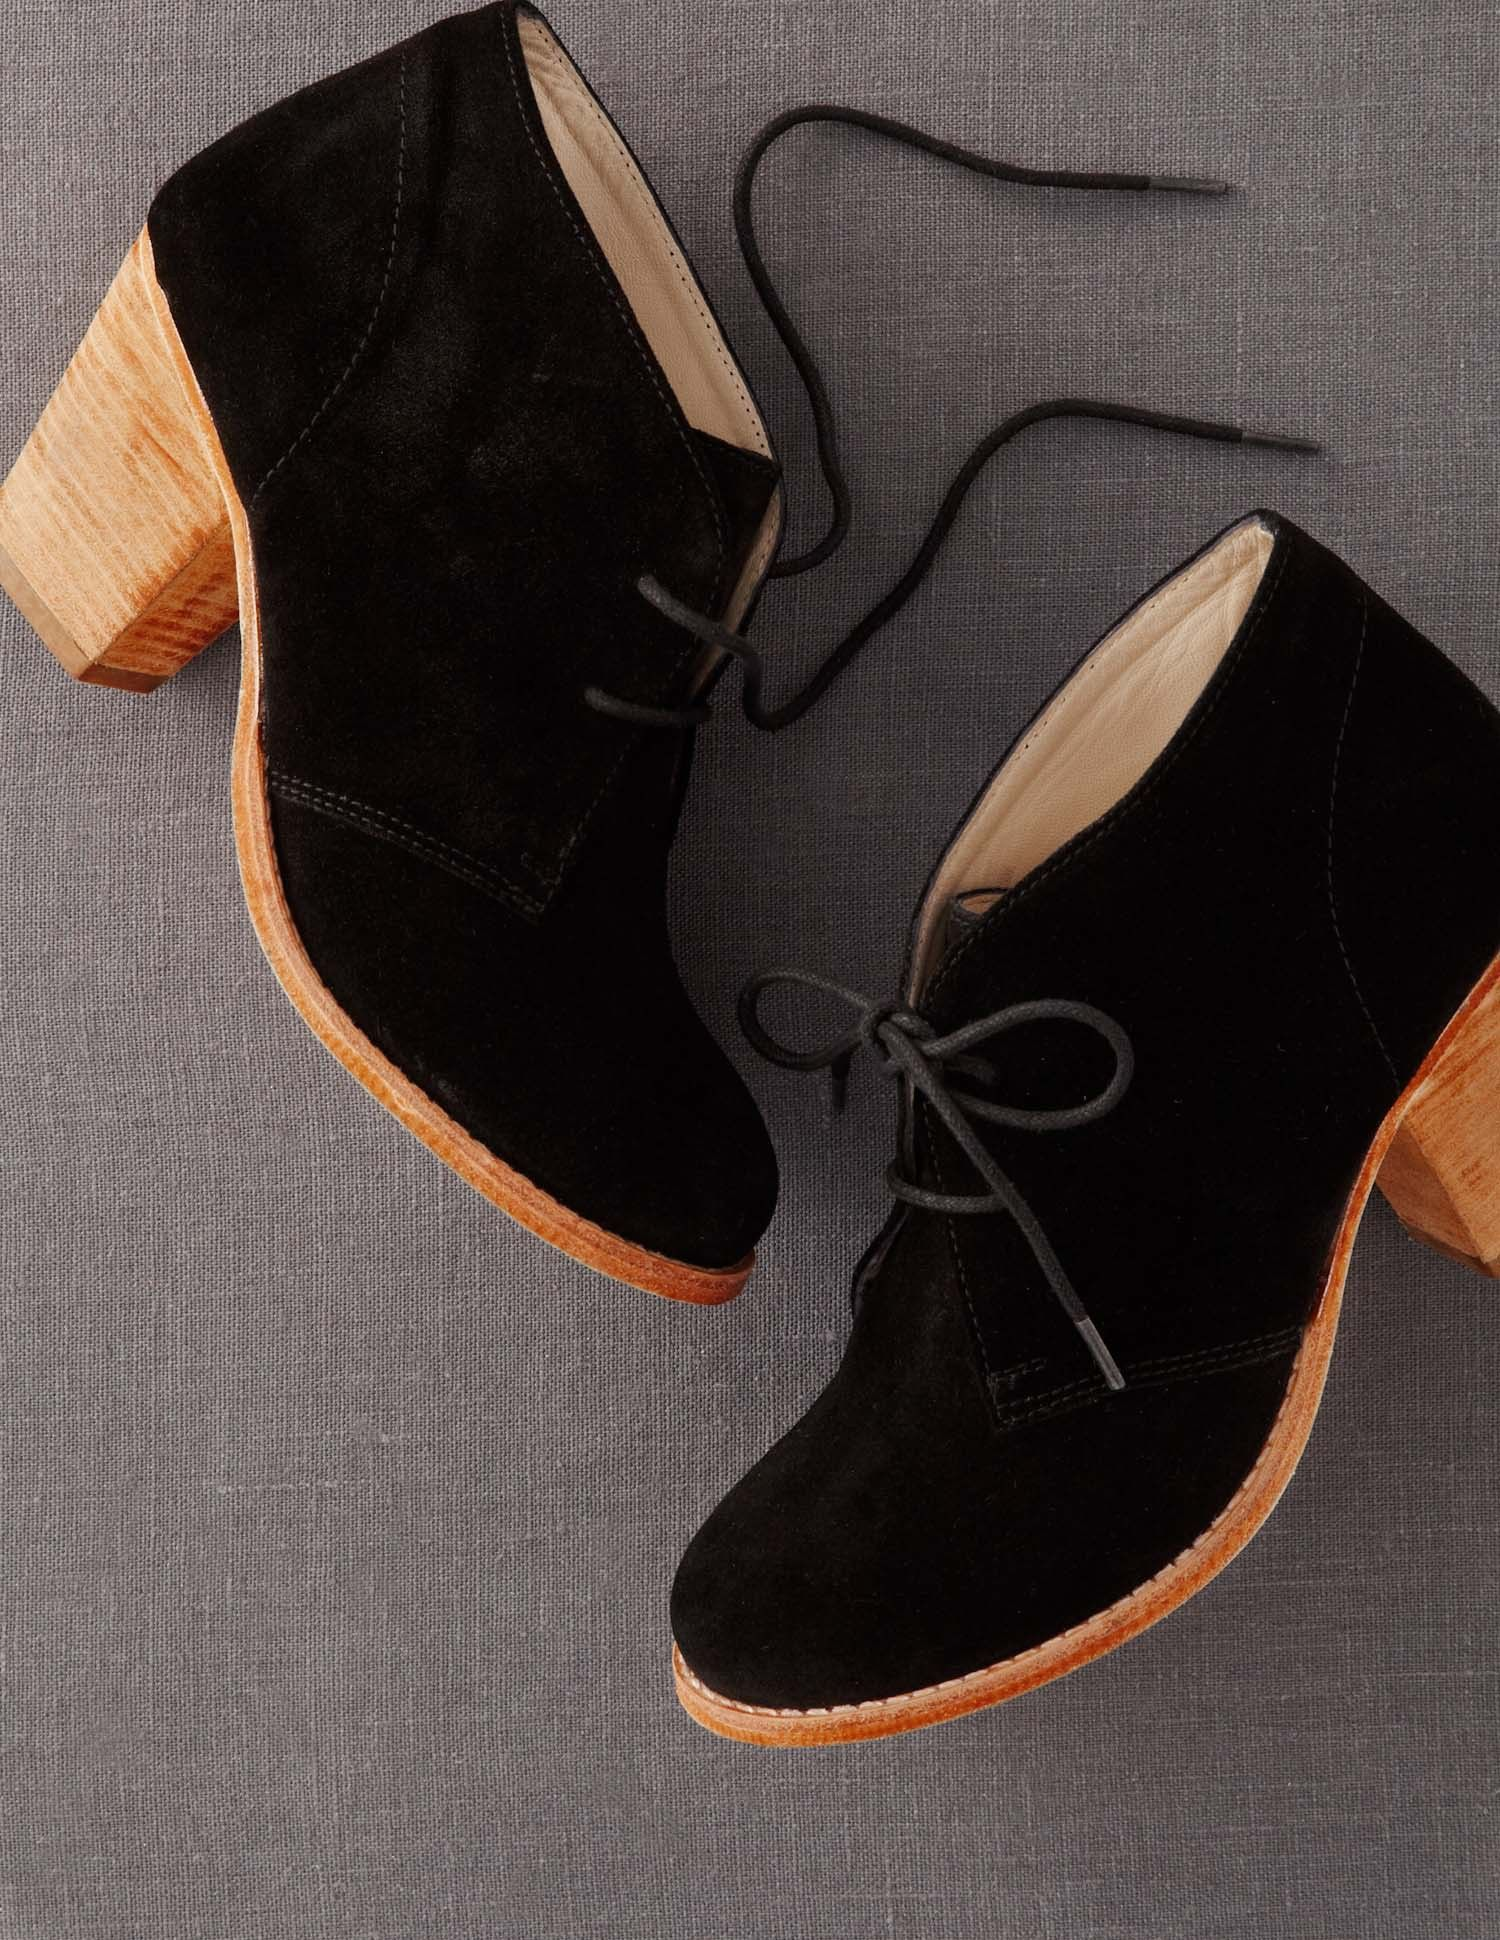 Effortless Suede Boots | Boots, Boot